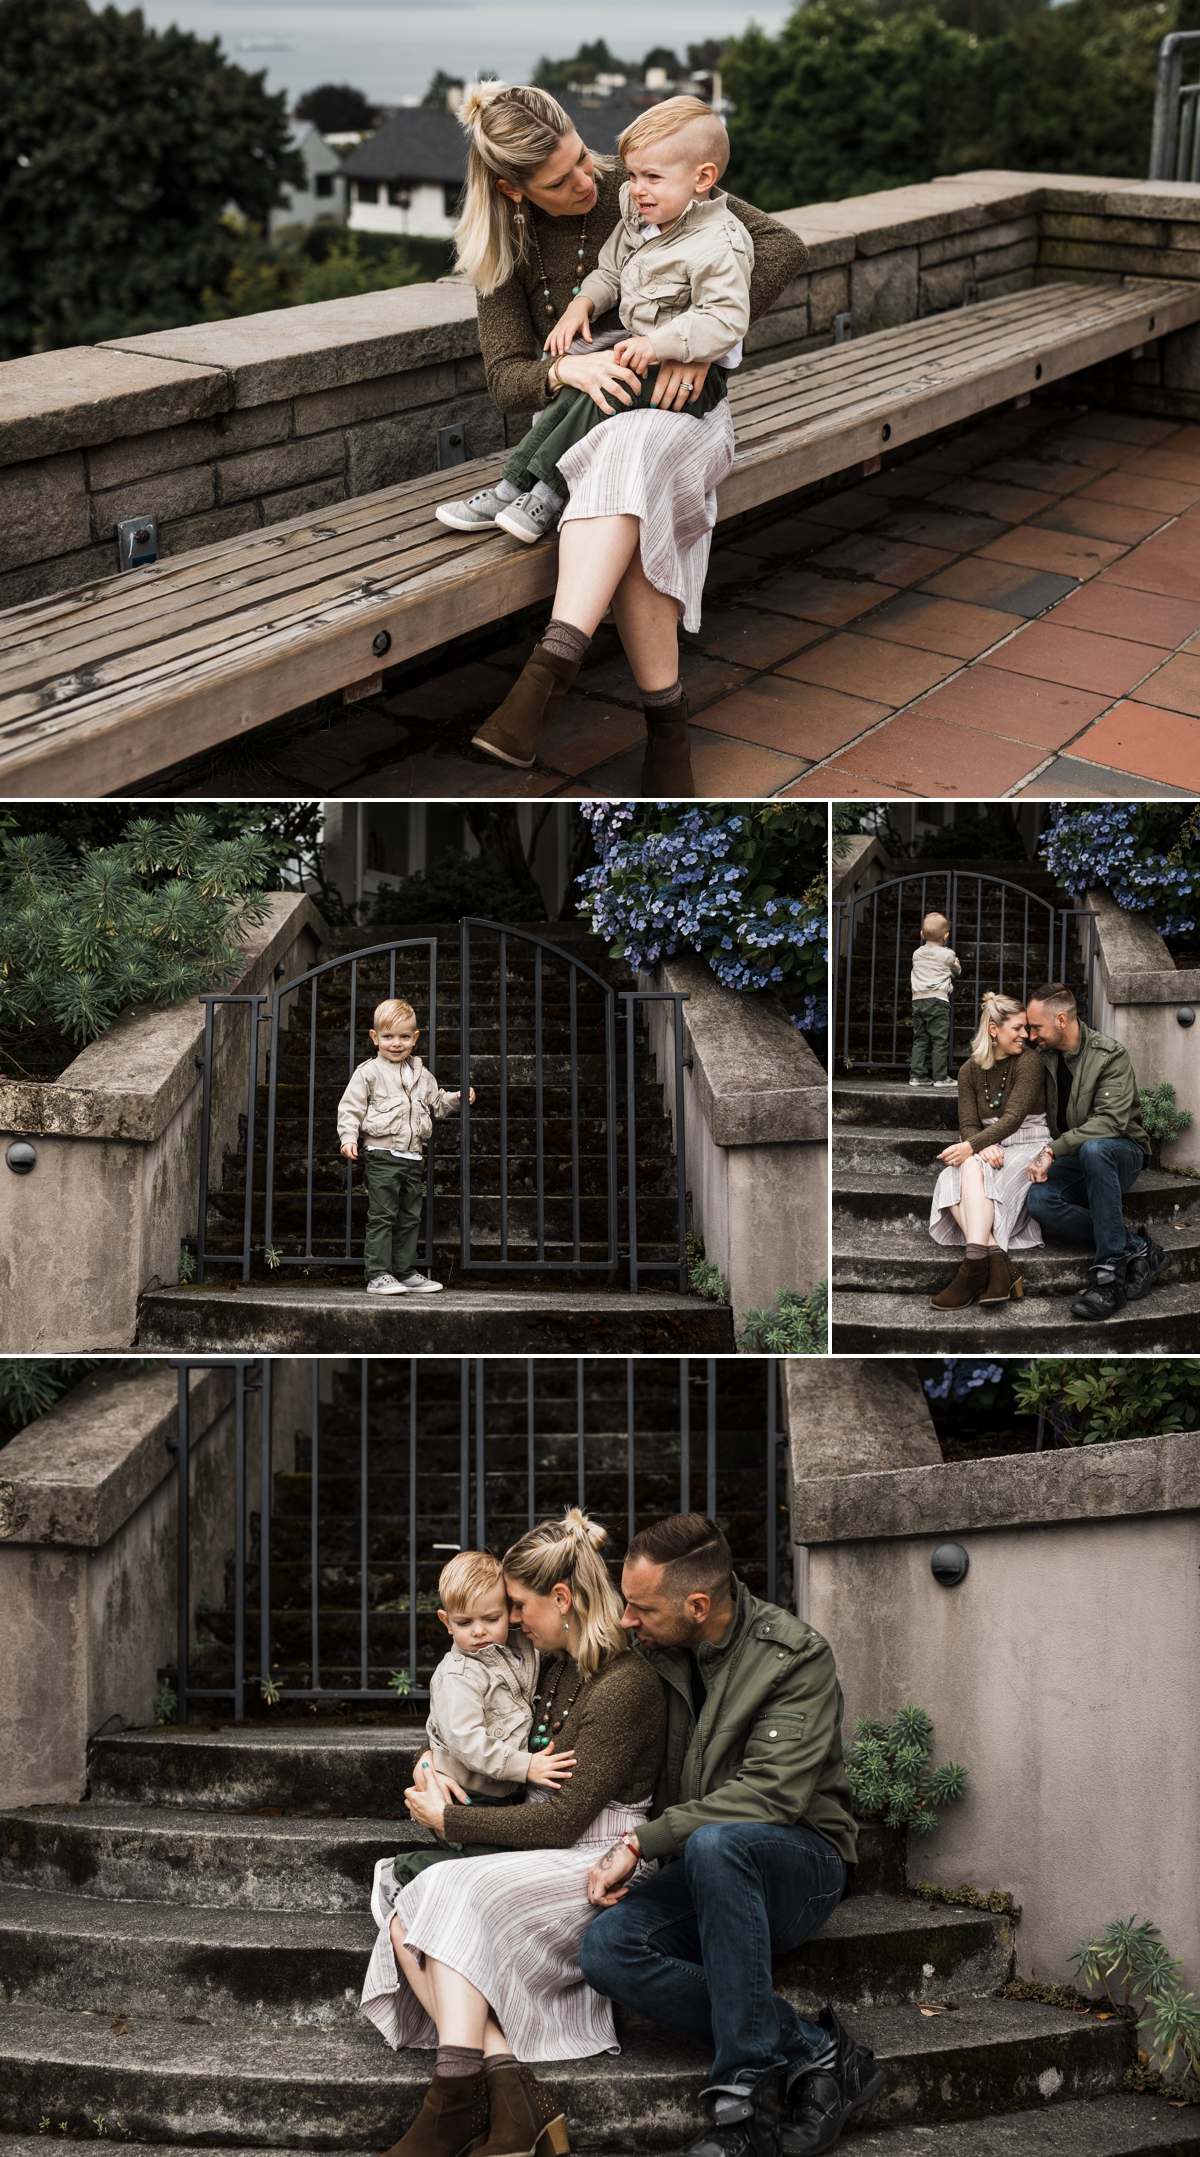 how to choose the time of day for a family photo shoot seattle lifestyle photographer